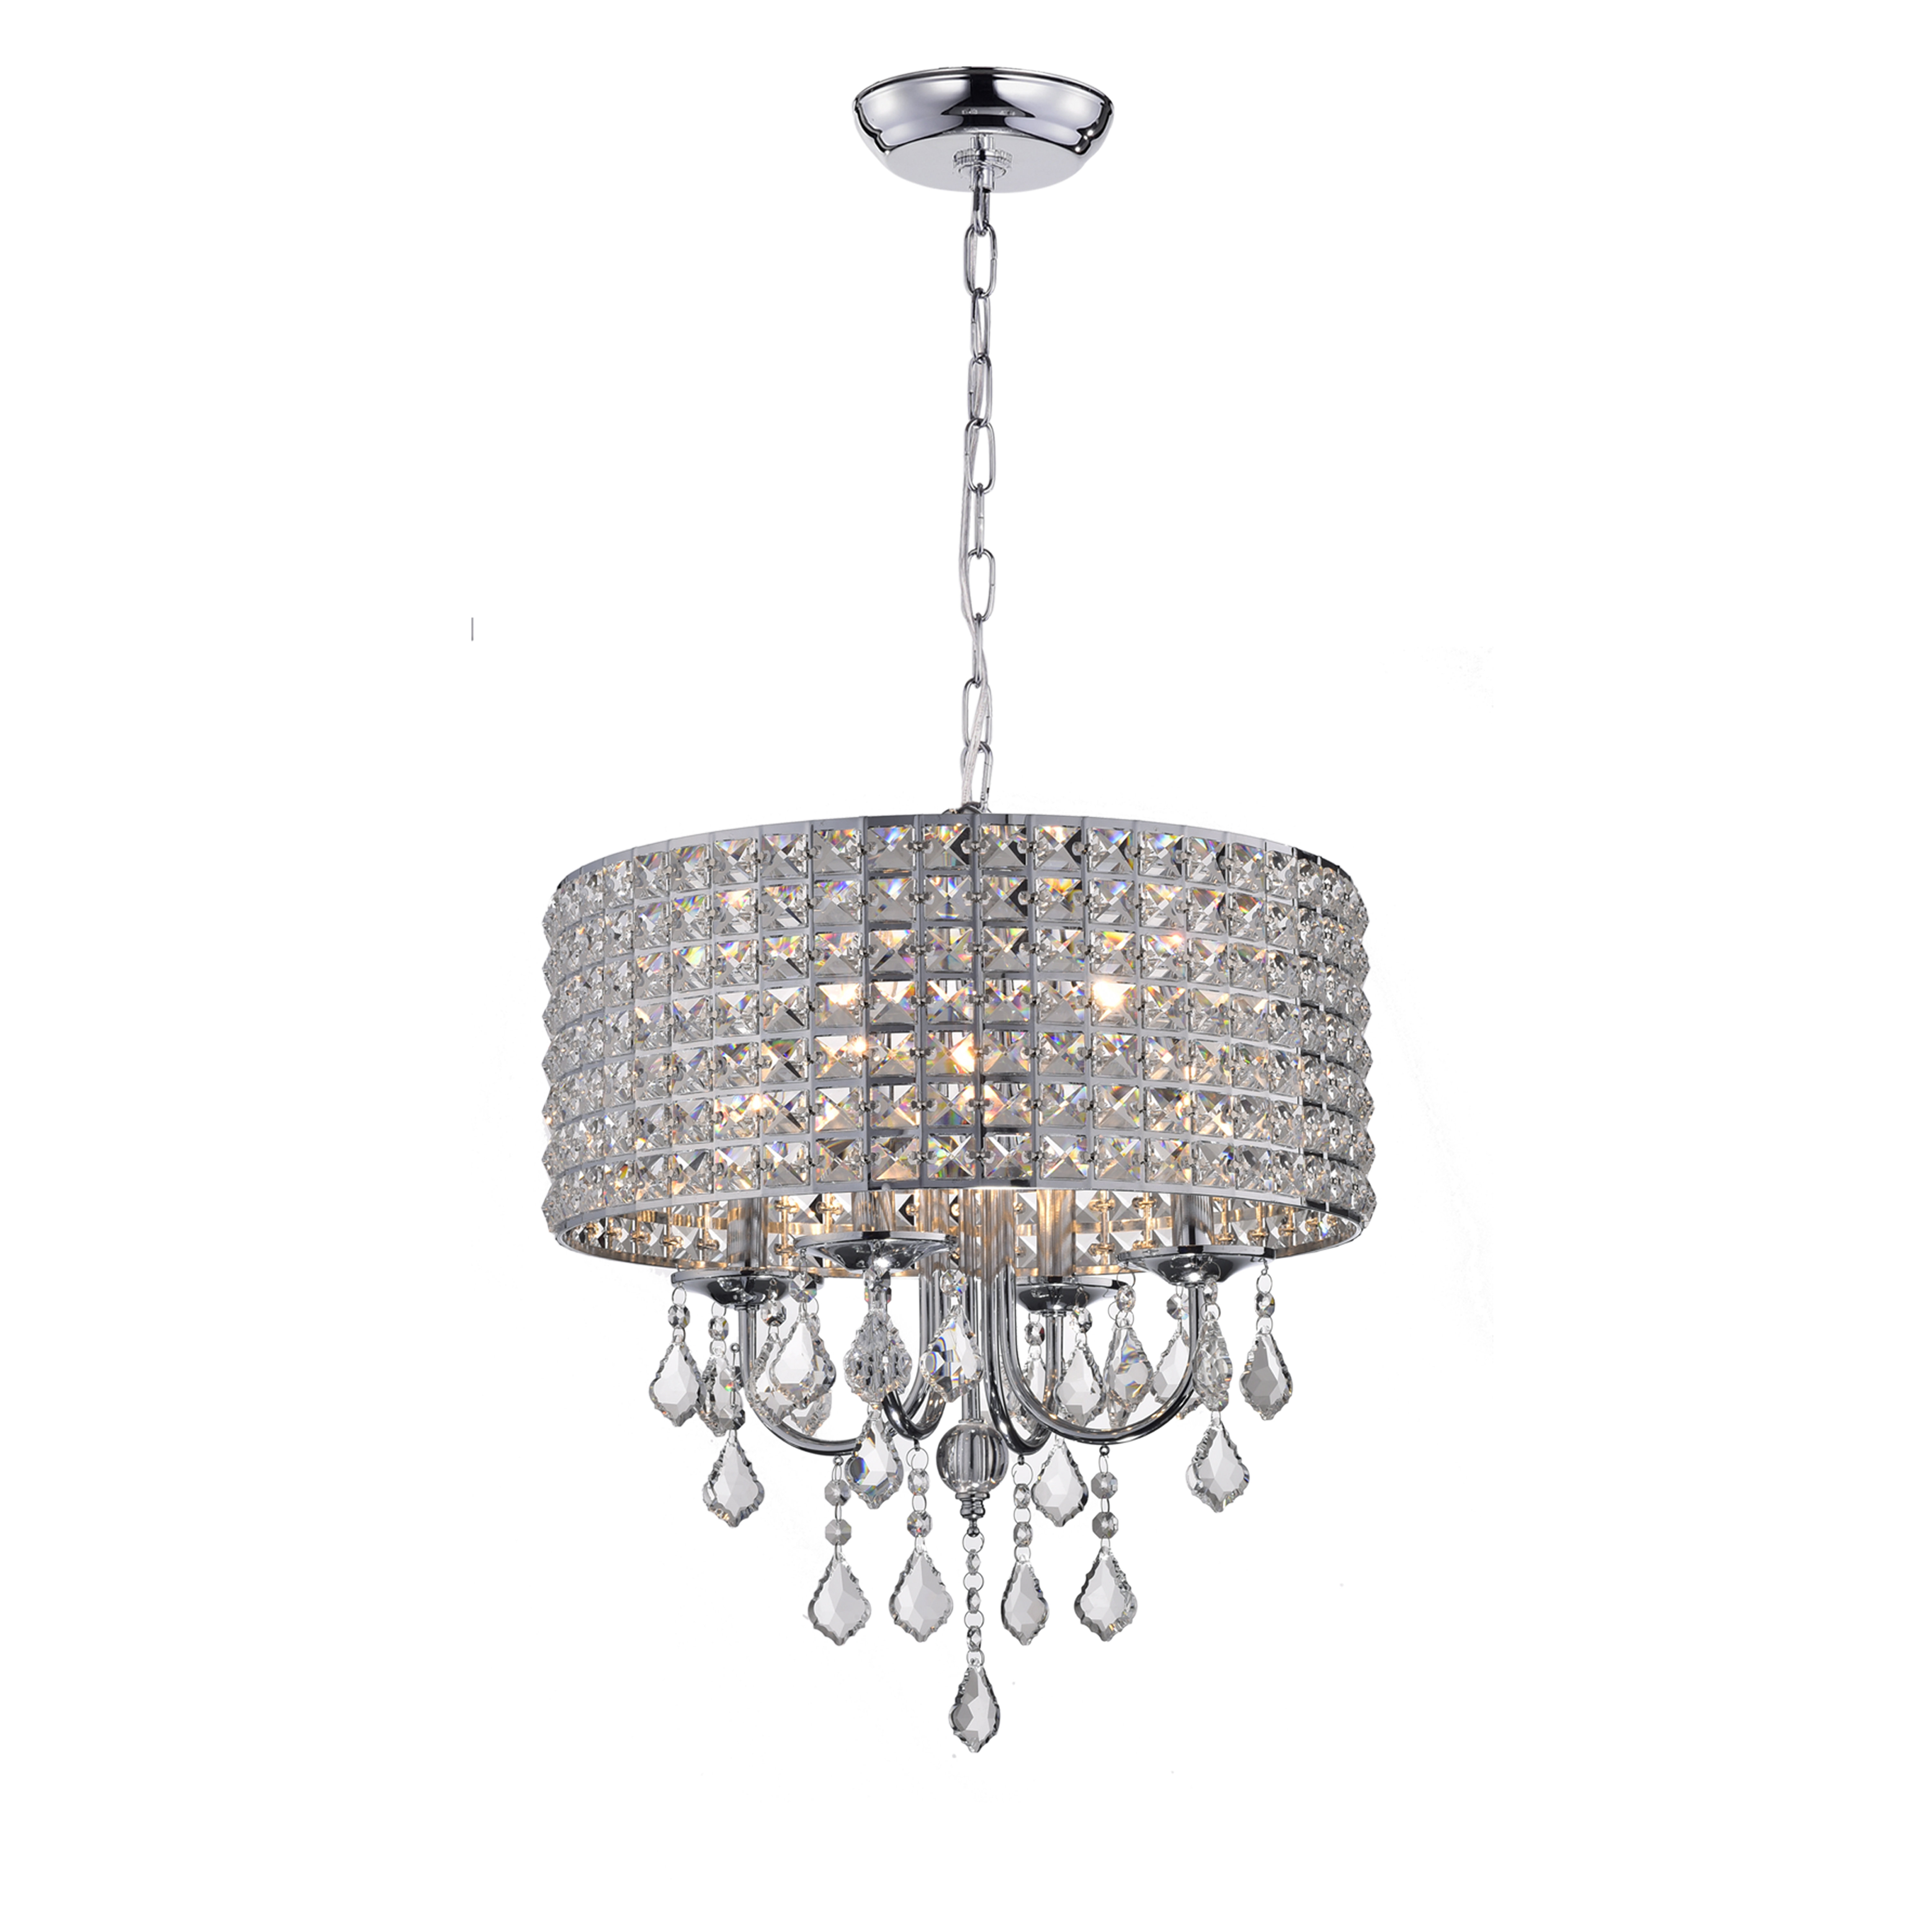 Albano 4 Light Crystal Chandeliers For Current Albano 4 Light Crystal Chandelier (View 4 of 25)